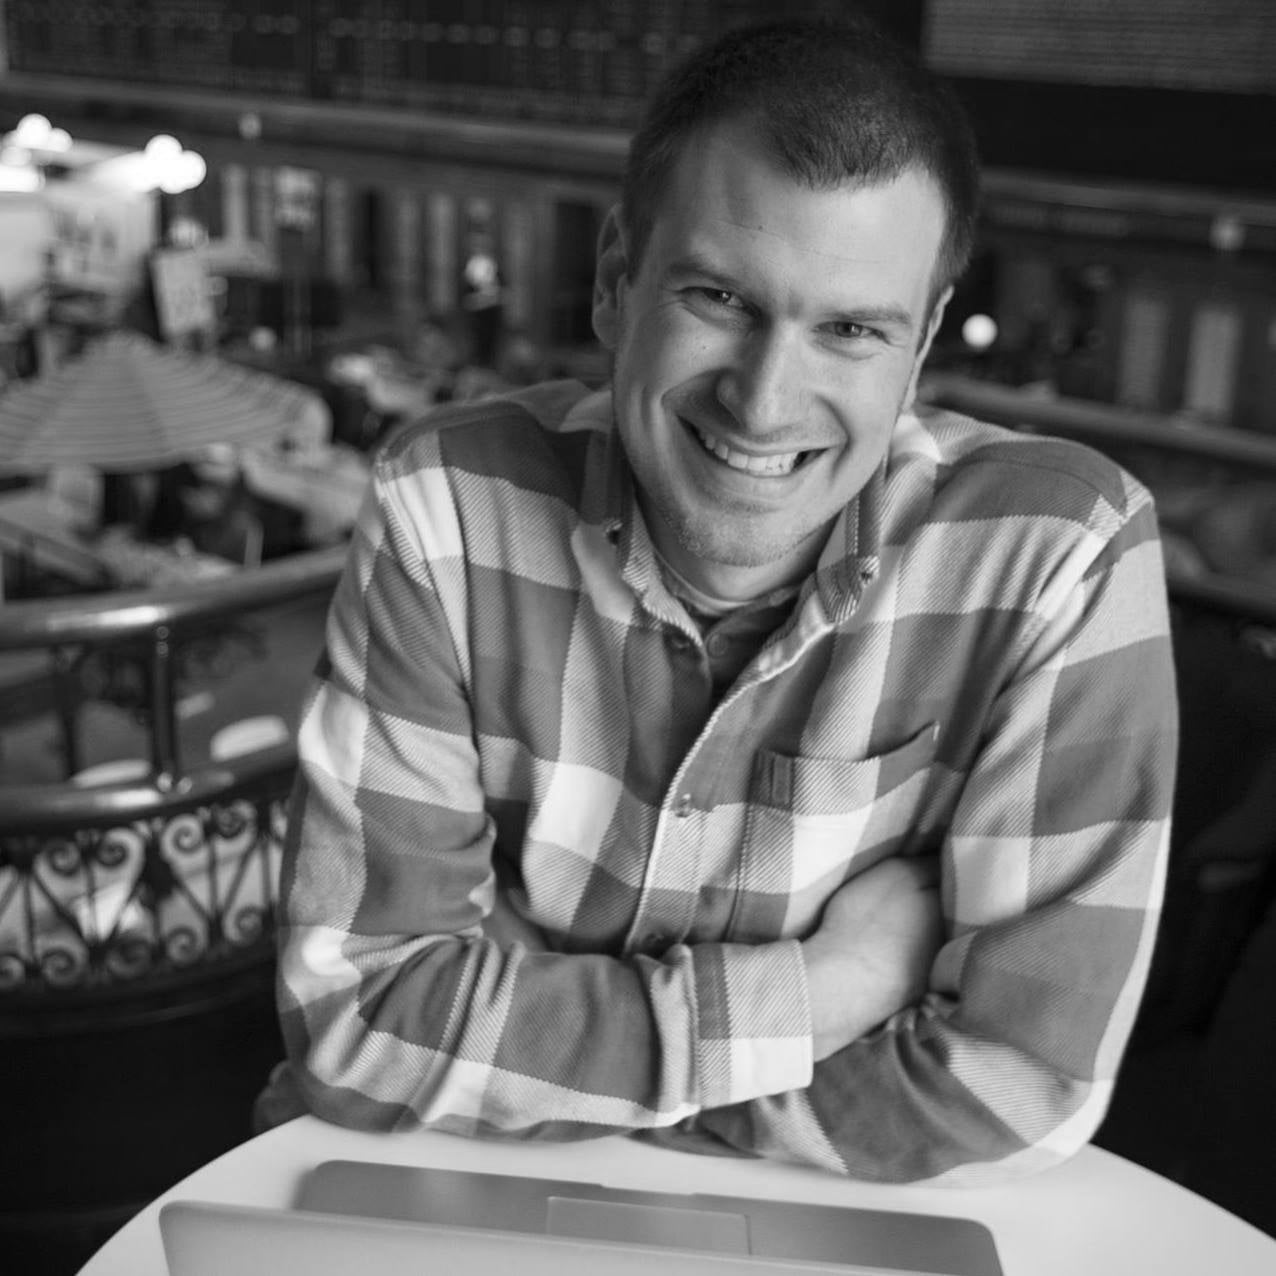 Black and white photo of Nate Grahek, the founder and CEO of Sticky